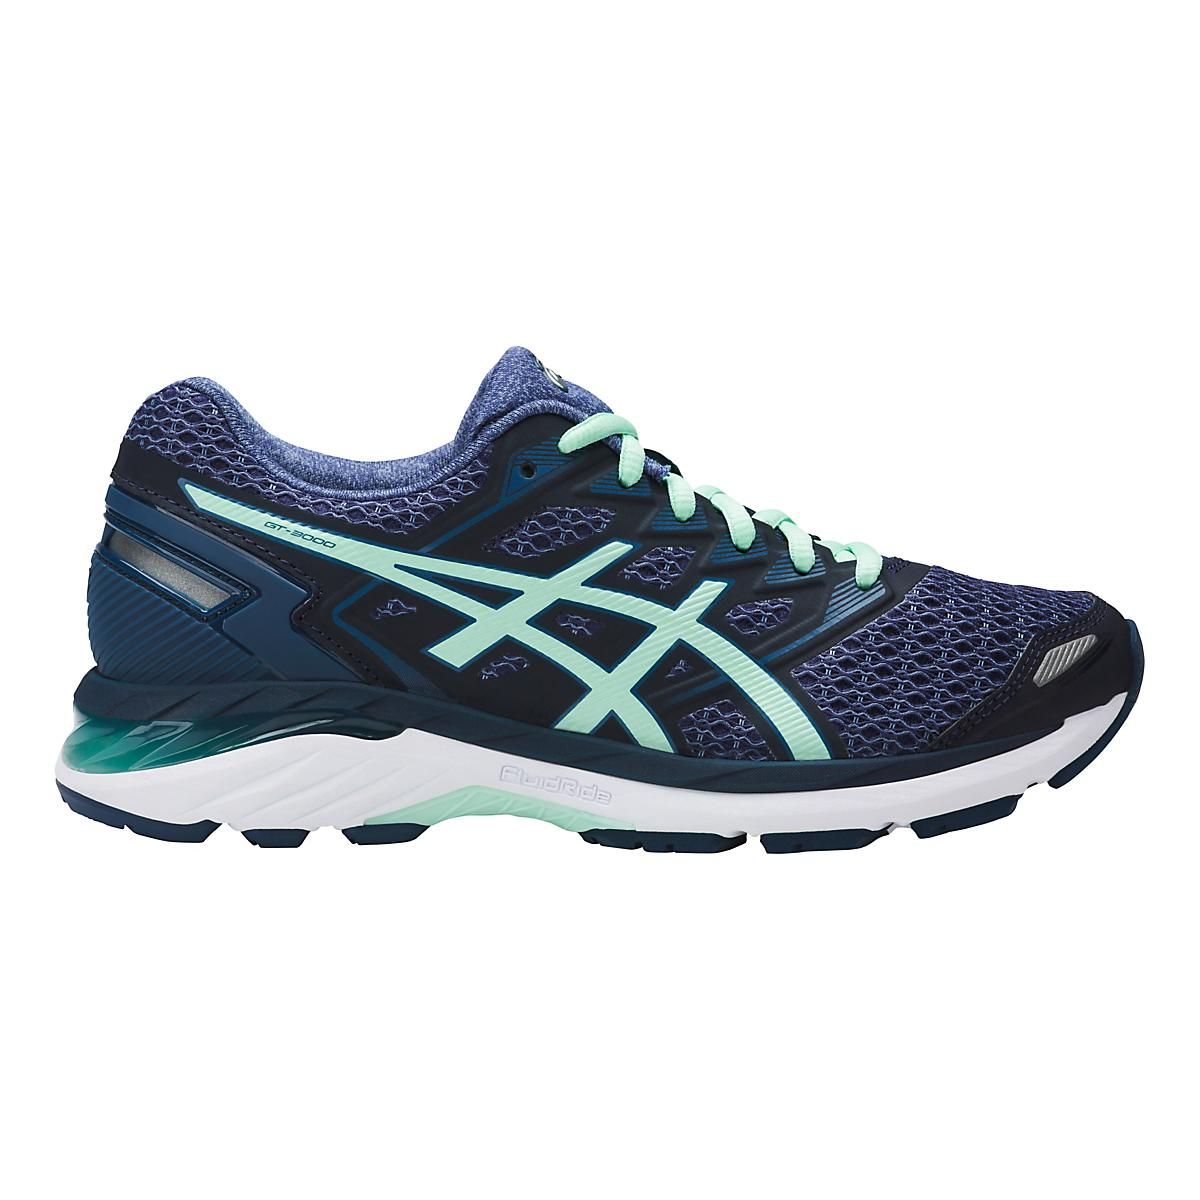 womens asics gt 3000 5 running shoe at road runner sports. Black Bedroom Furniture Sets. Home Design Ideas